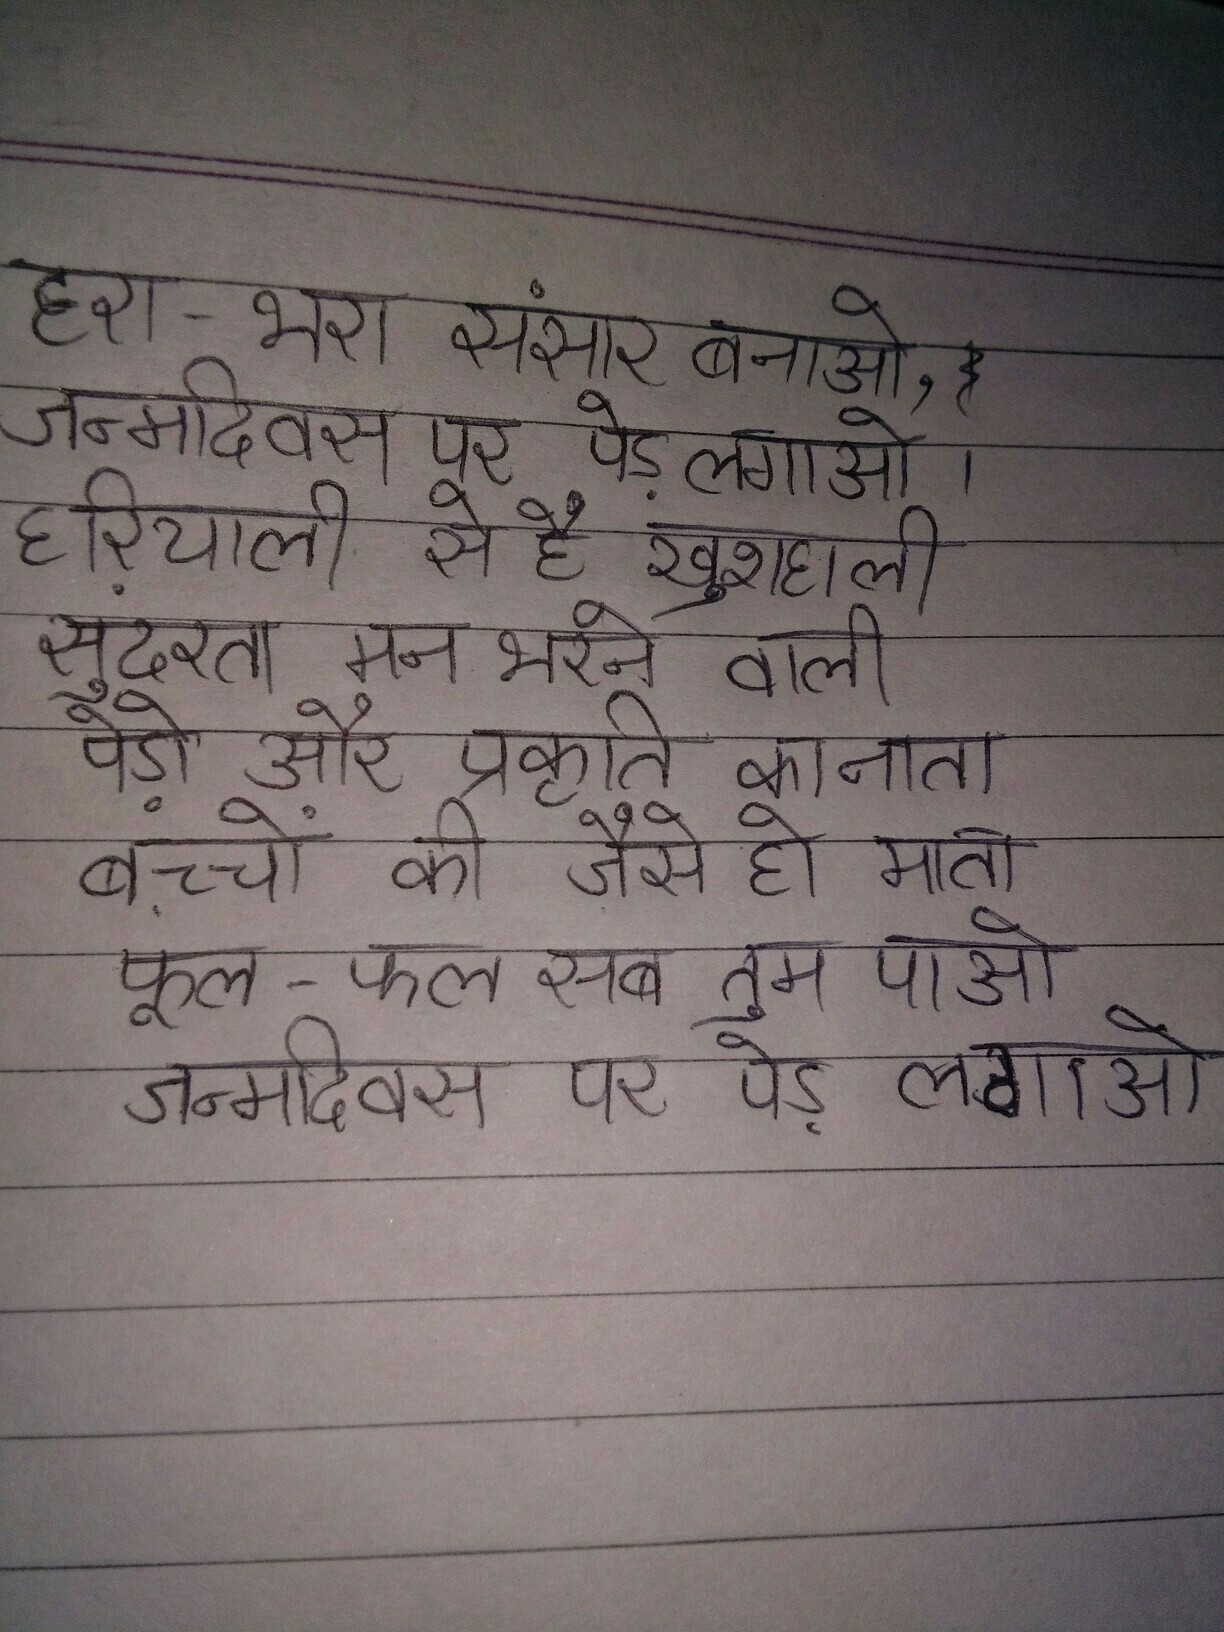 Environment Se Related Poems Hindi Me Brainlyin